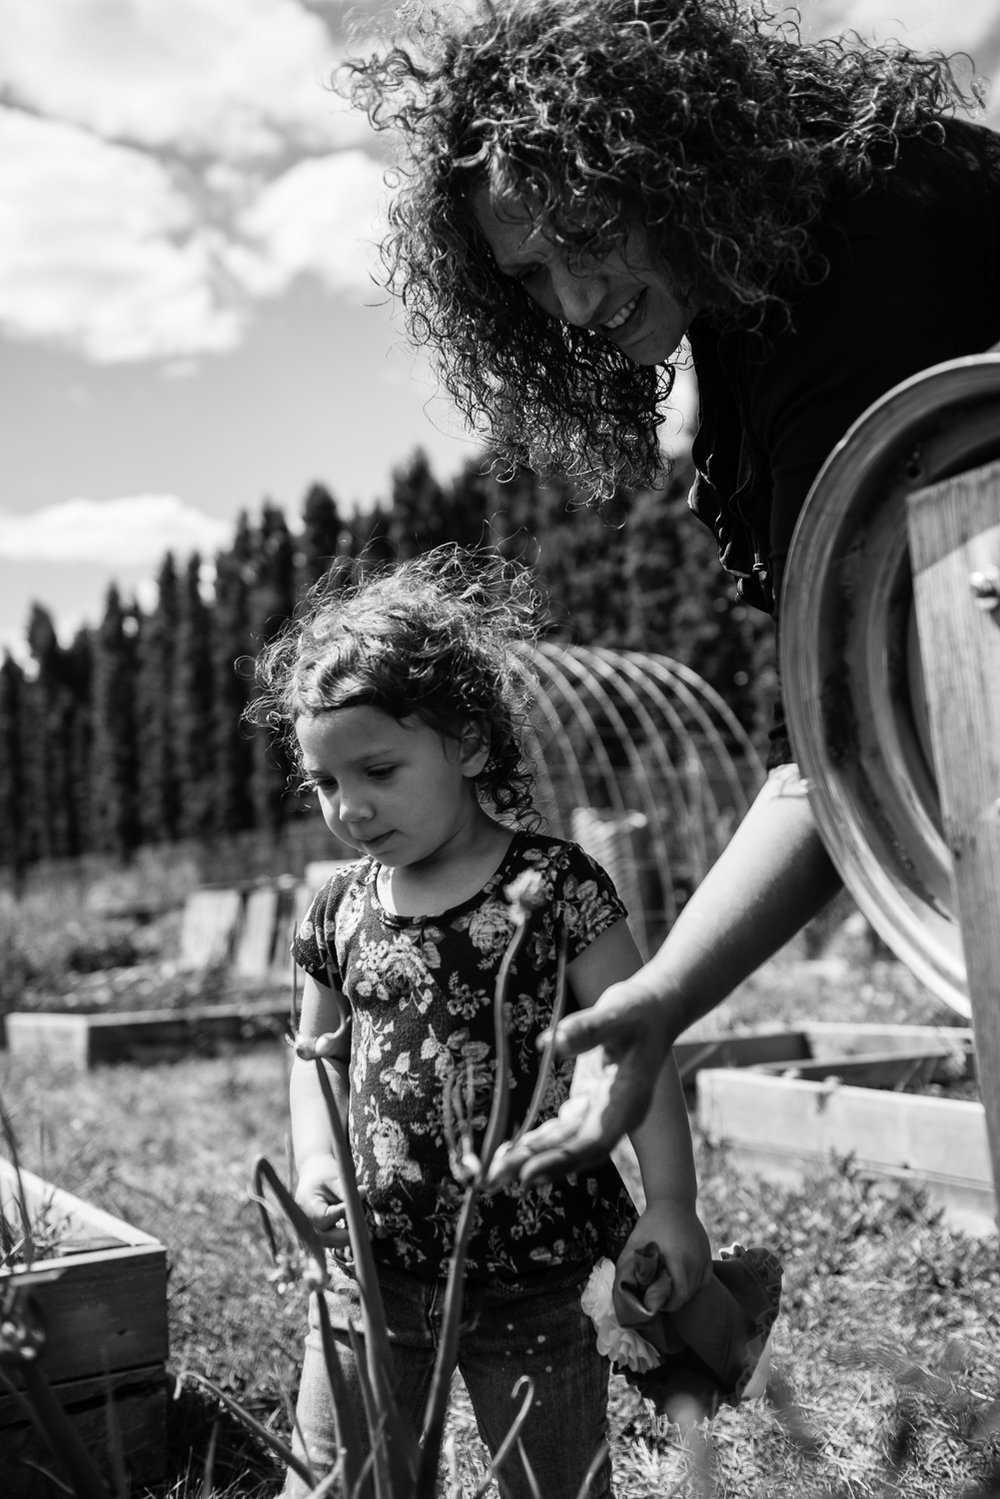 """Carmen and her granddaughter at the community garden where they grow vegetables.Says Carmen """"It's really great to see – I really feel like we've broken that third-generation cycle of being involved within the child welfare system. Having that complex trauma. My children who have children are successfully parenting. They work, they go to school. They are upstanding citizens. So somewhere along the line they were gifted and I'm very grateful for that."""""""